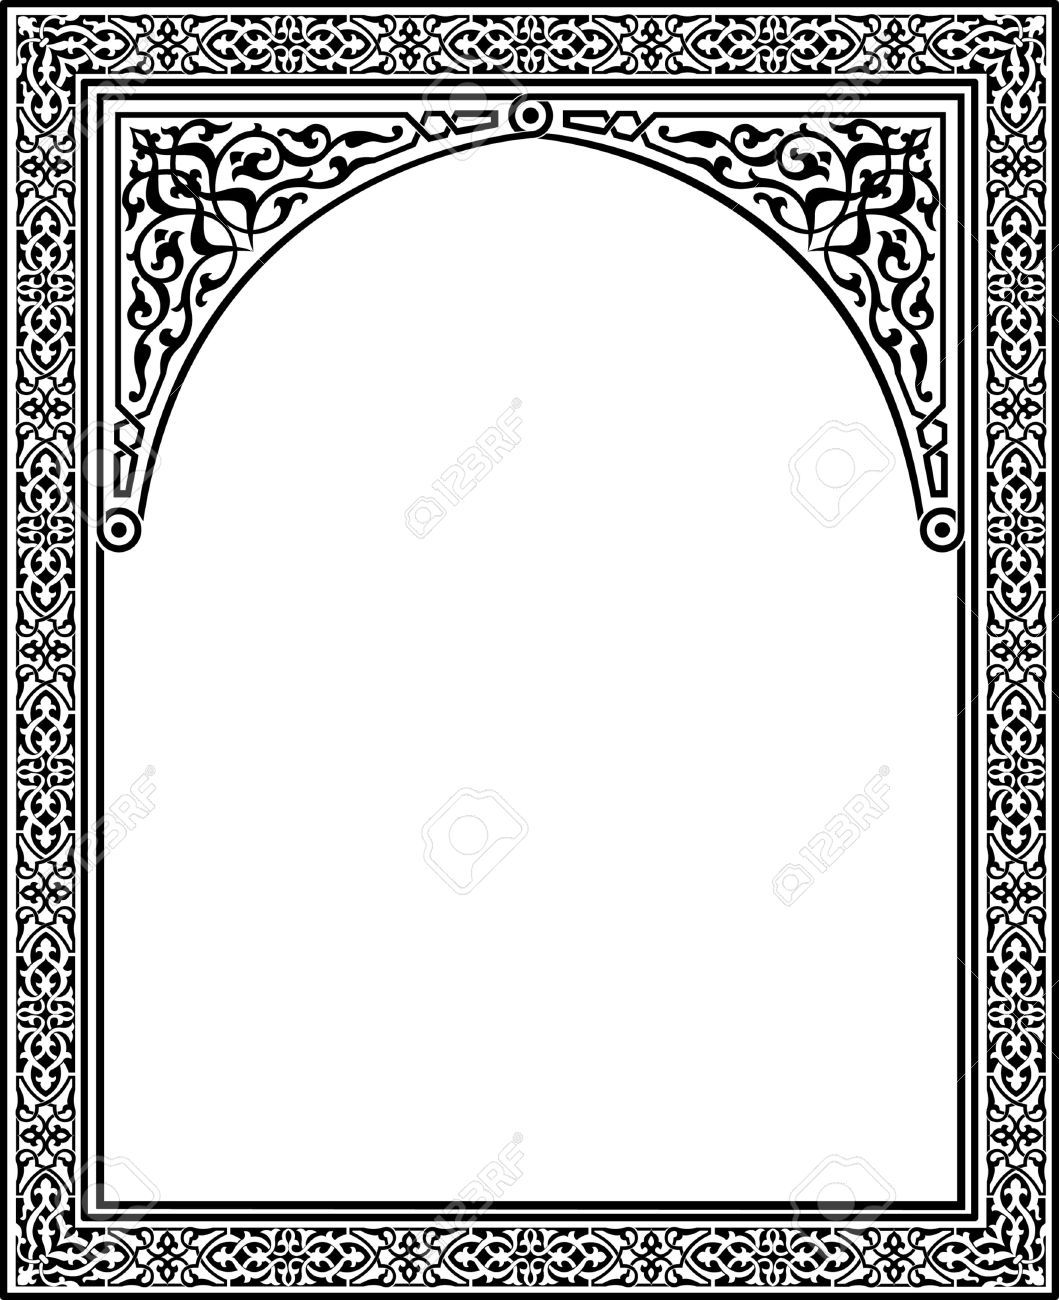 simple islamic art patterns google search calligraphy